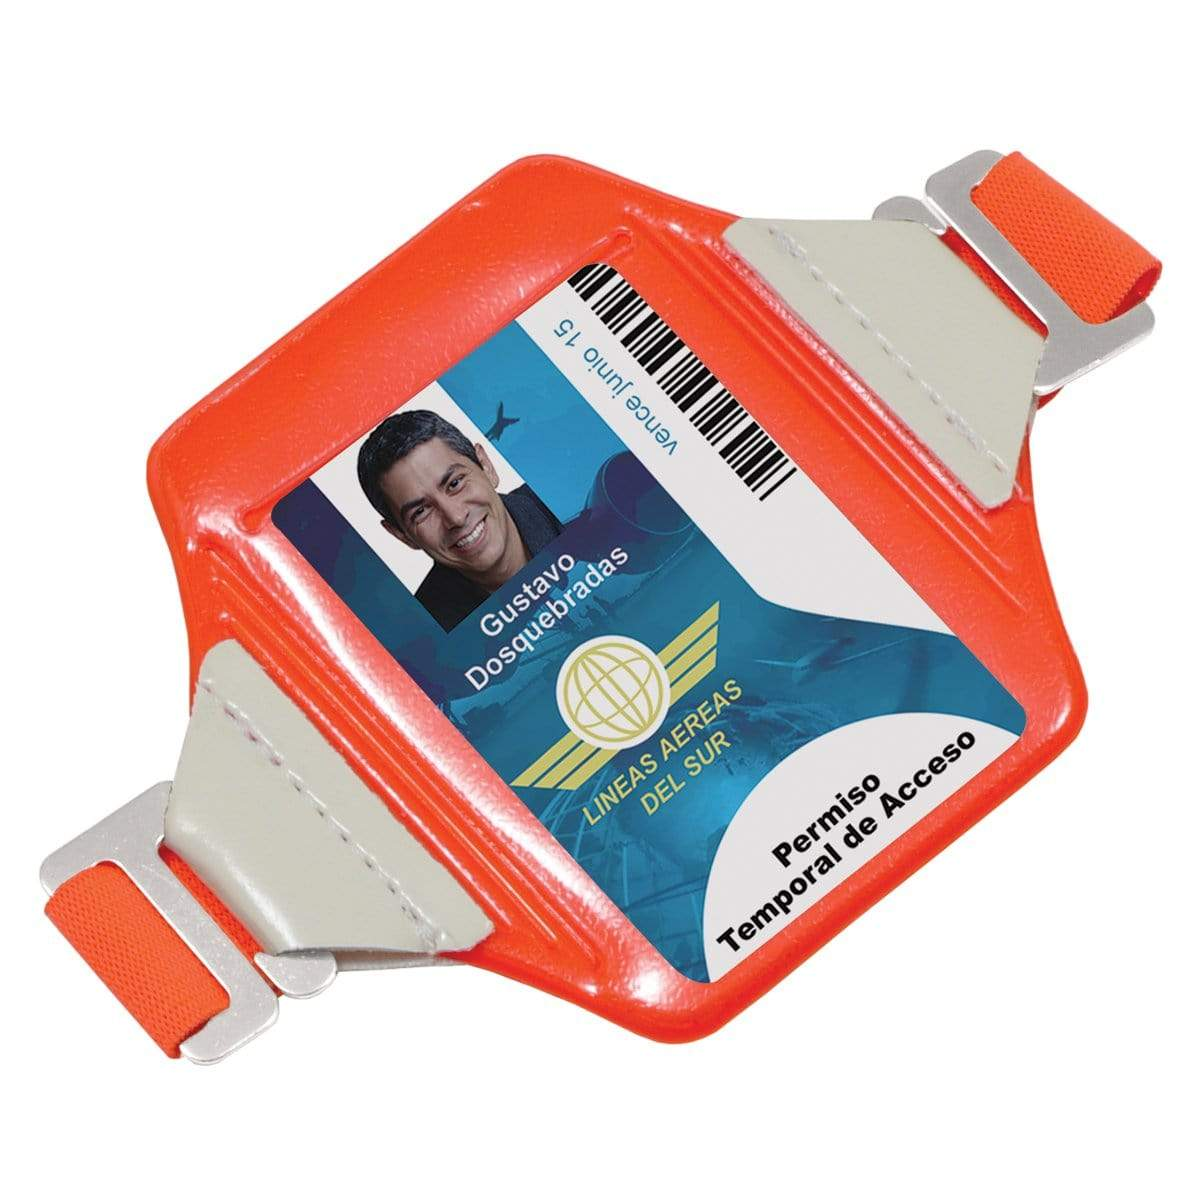 Reflective Bright Orange Arm Badge Holder with Glow-in-the-Dark Tabs and Included Armband